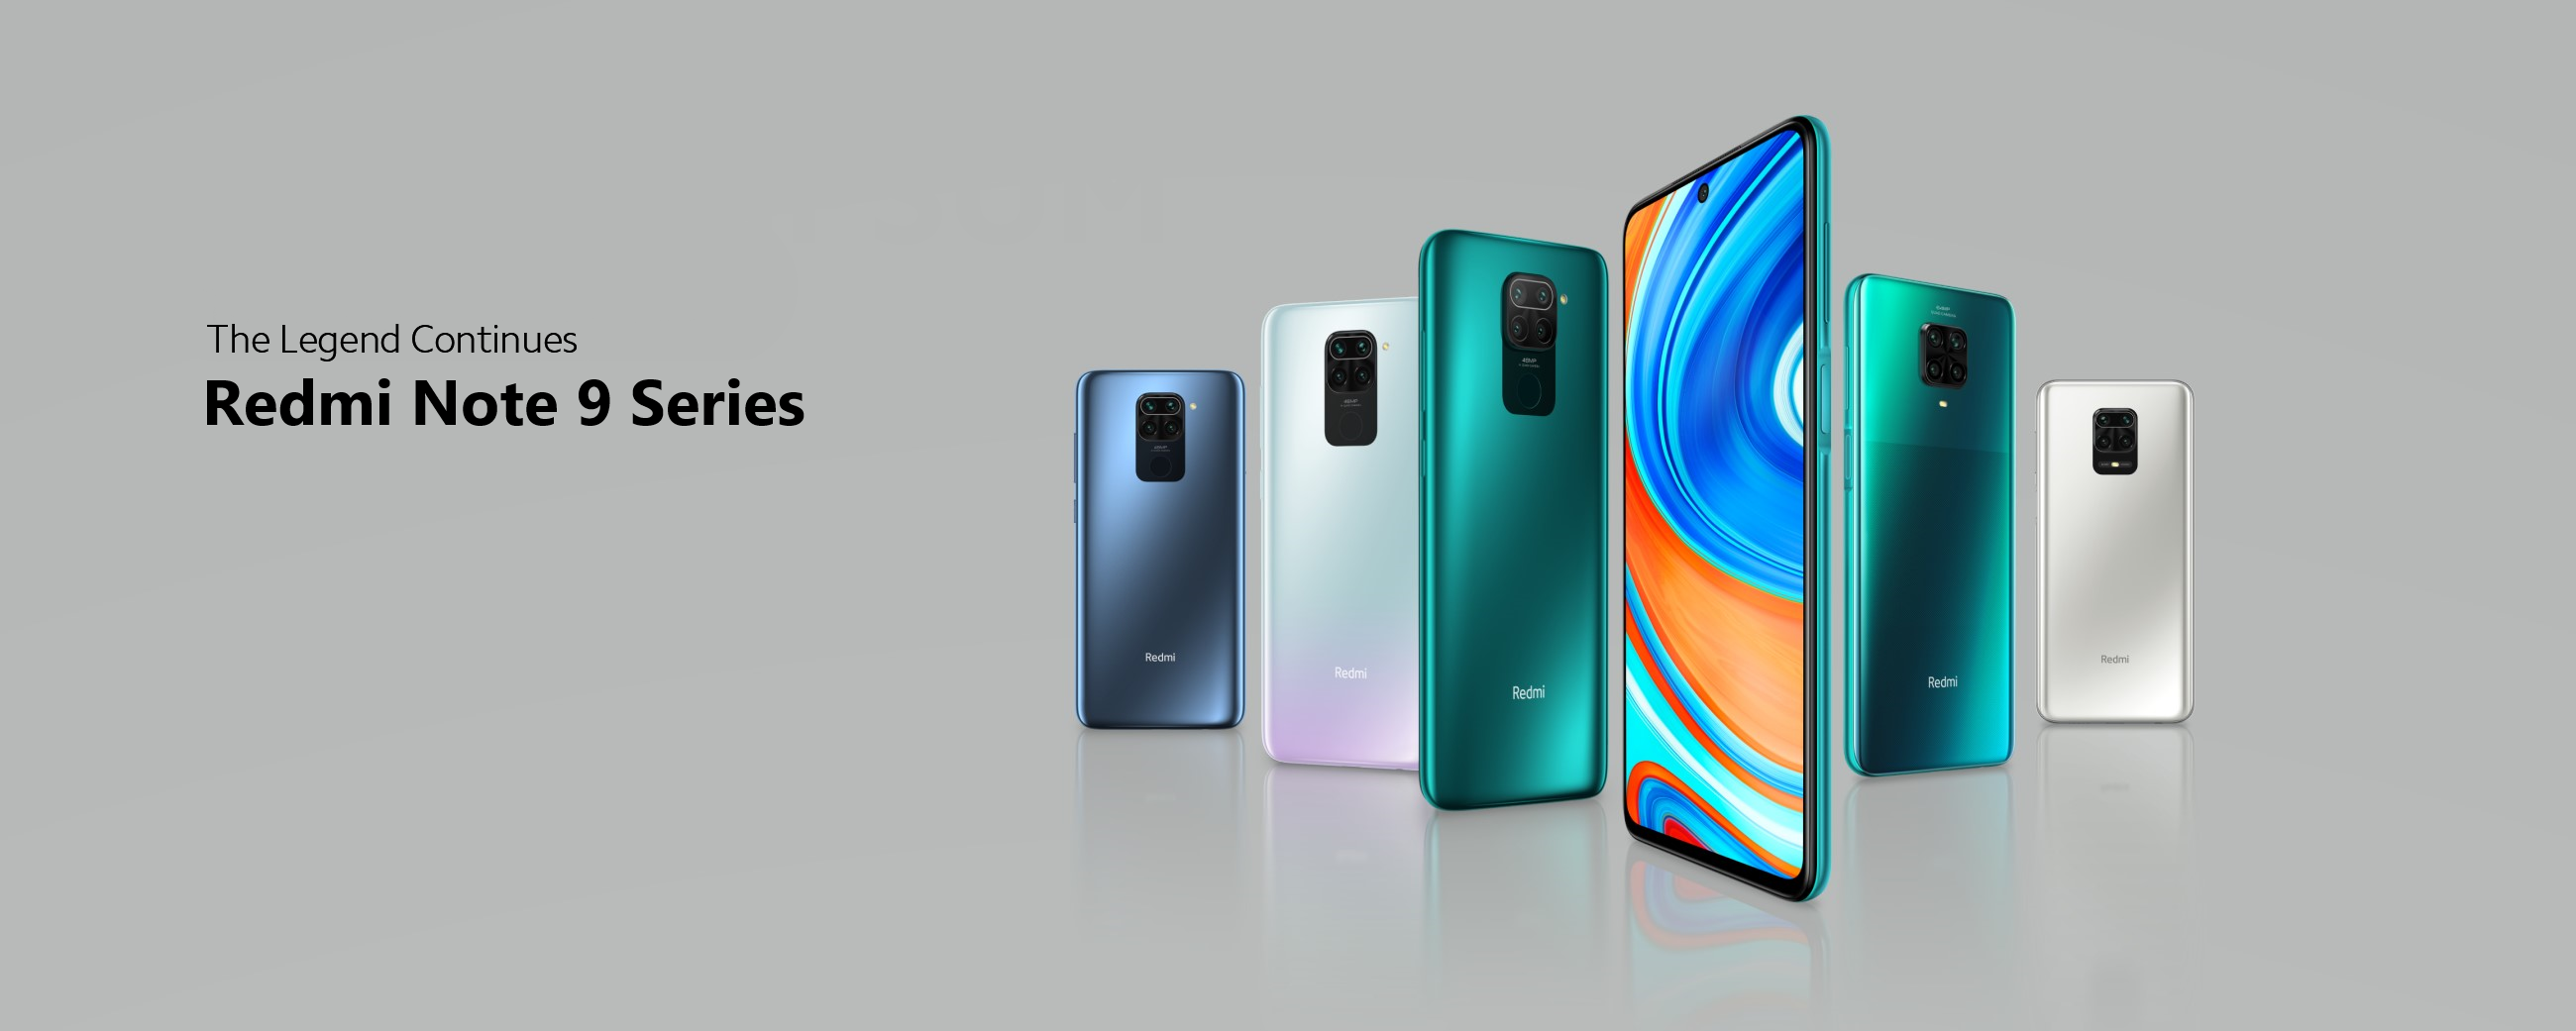 Redmi 9 series